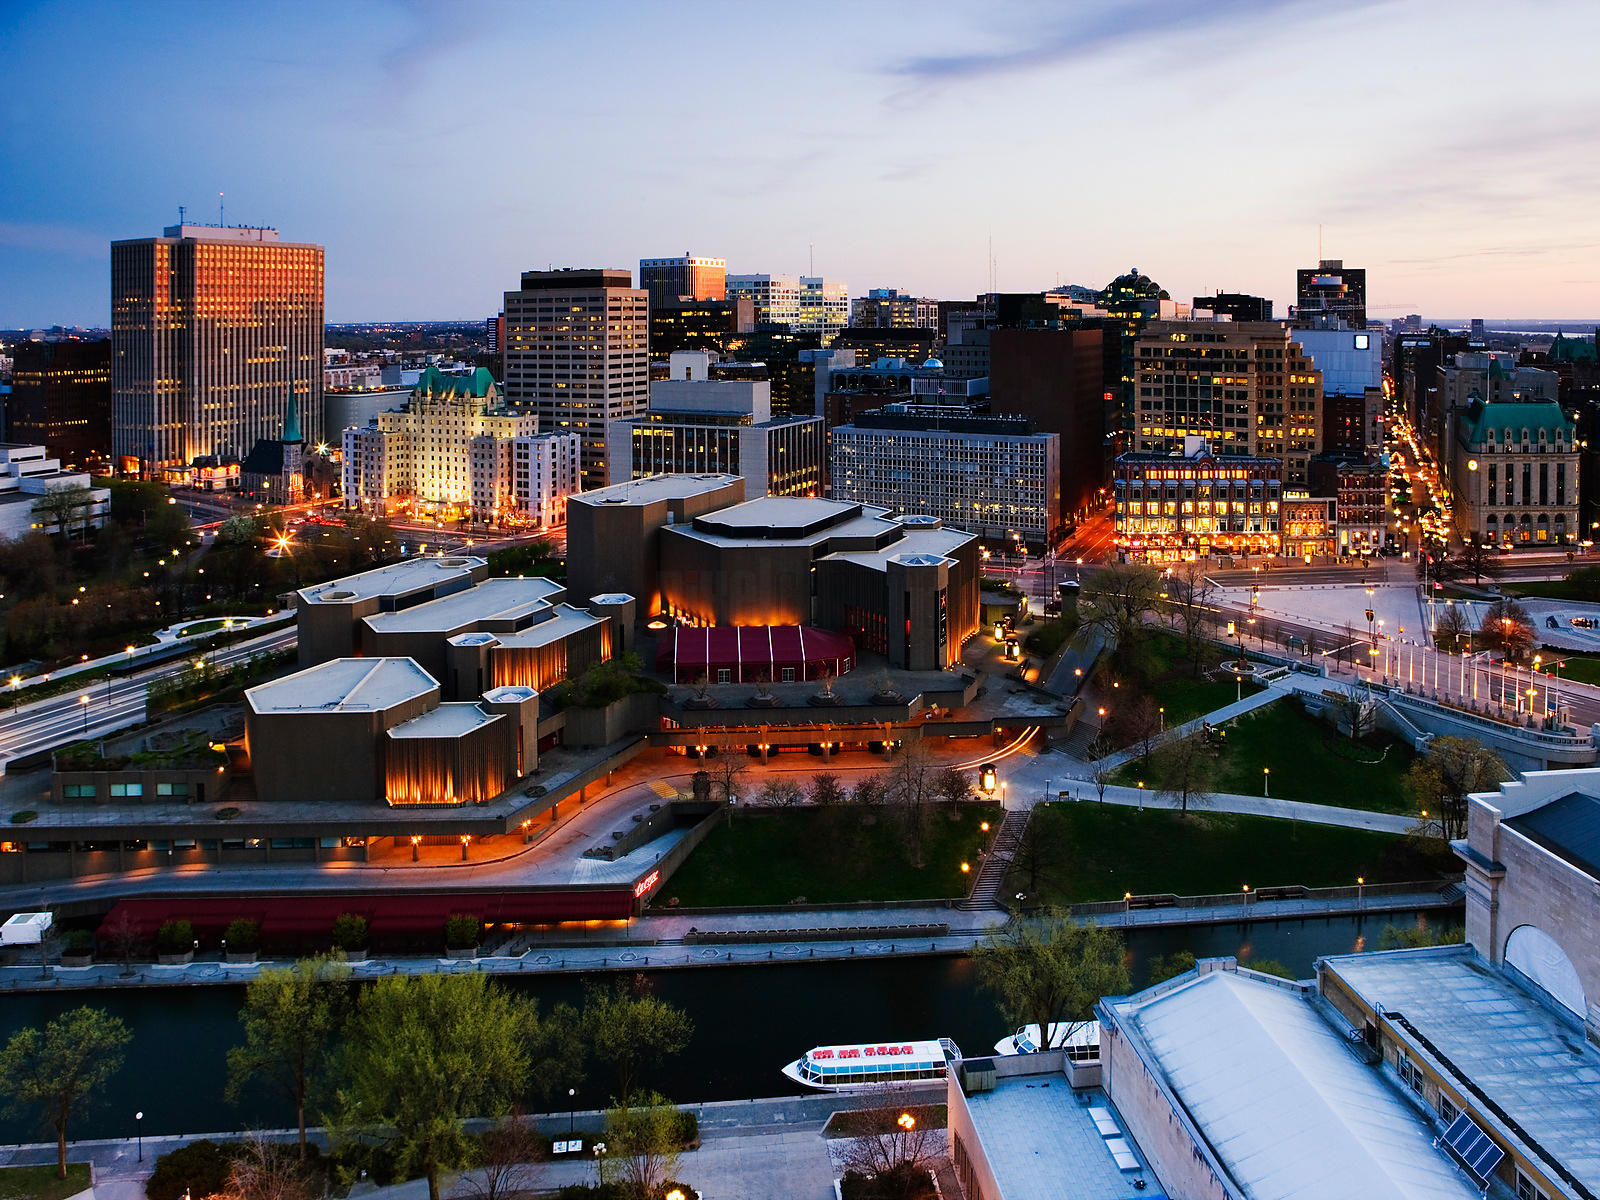 National Arts Centre and Skyline, Ottawa, Ontario, Canada